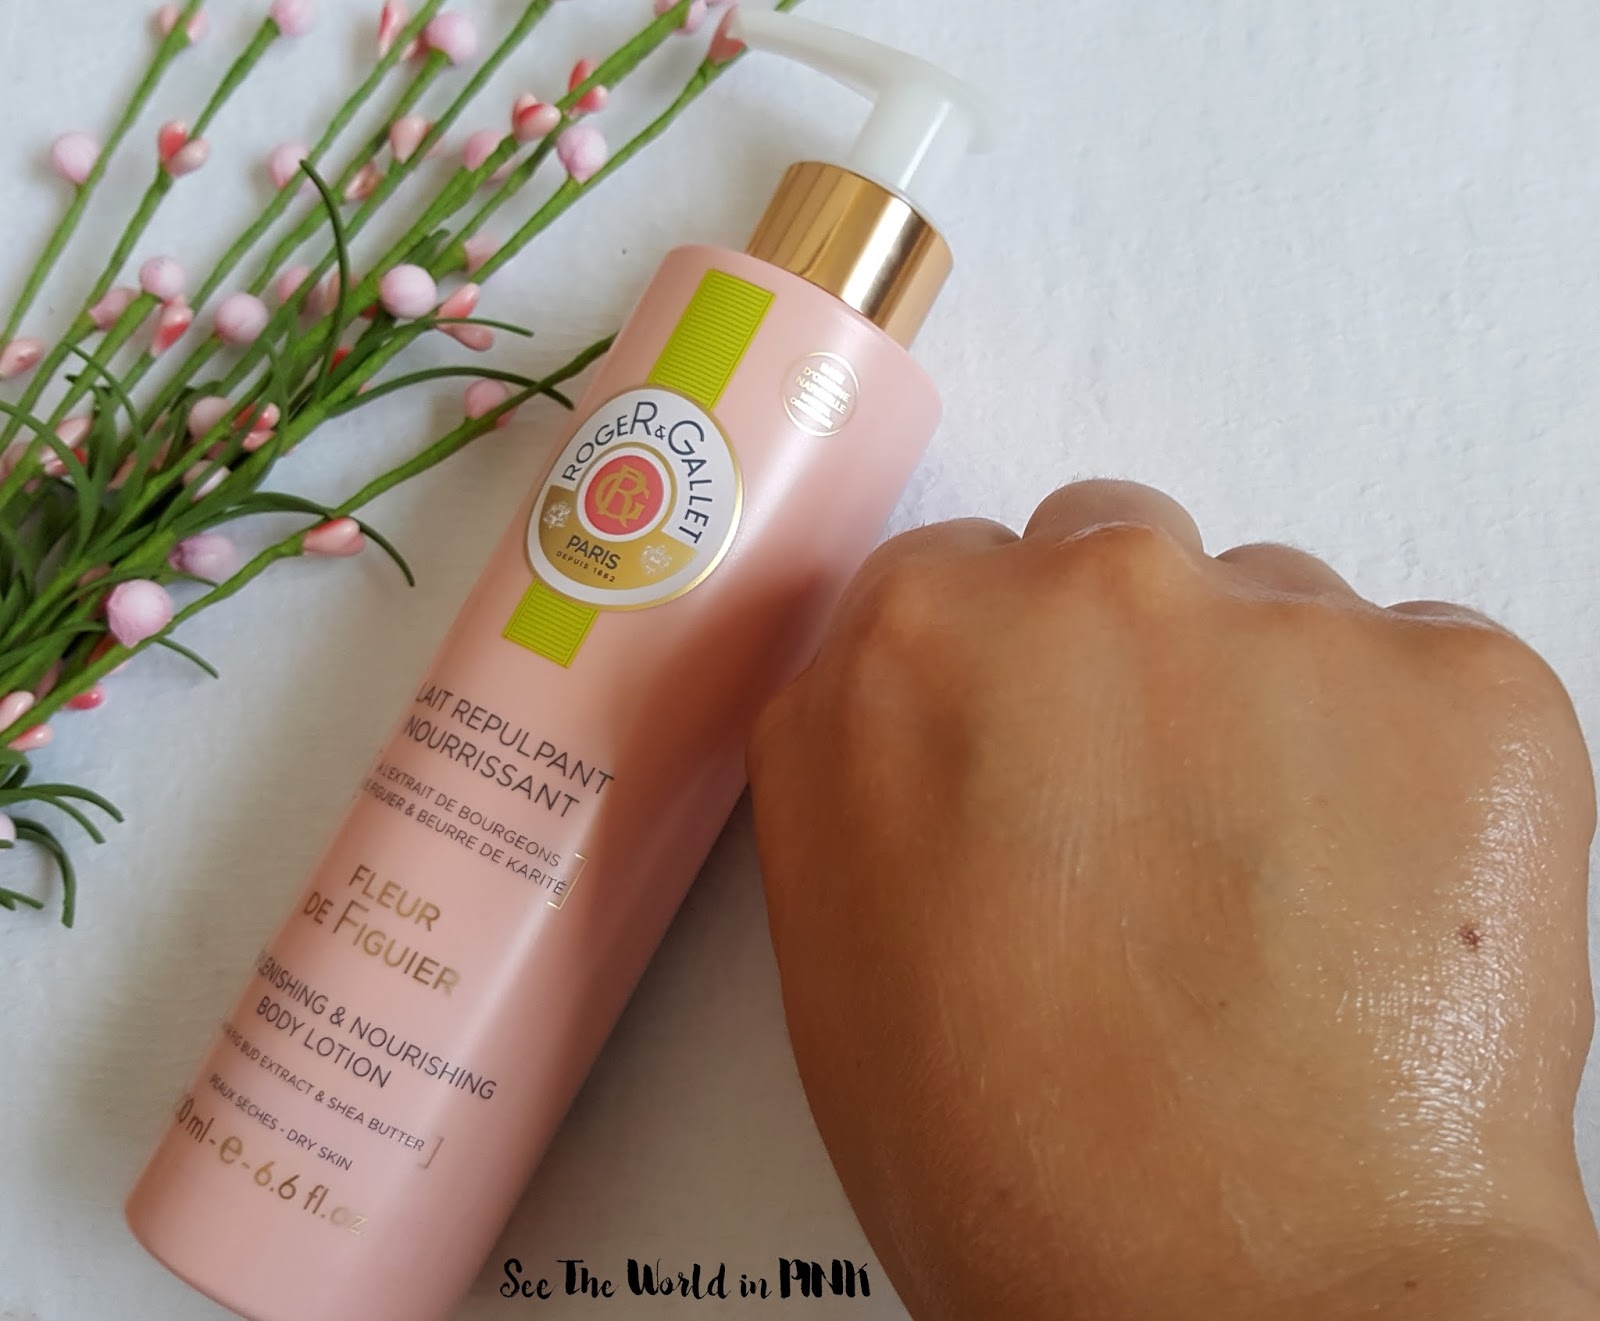 Skincare Sunday - Roger & Gallet Fleur de Figuier Replenishing & Nourishing Body Lotion Review!